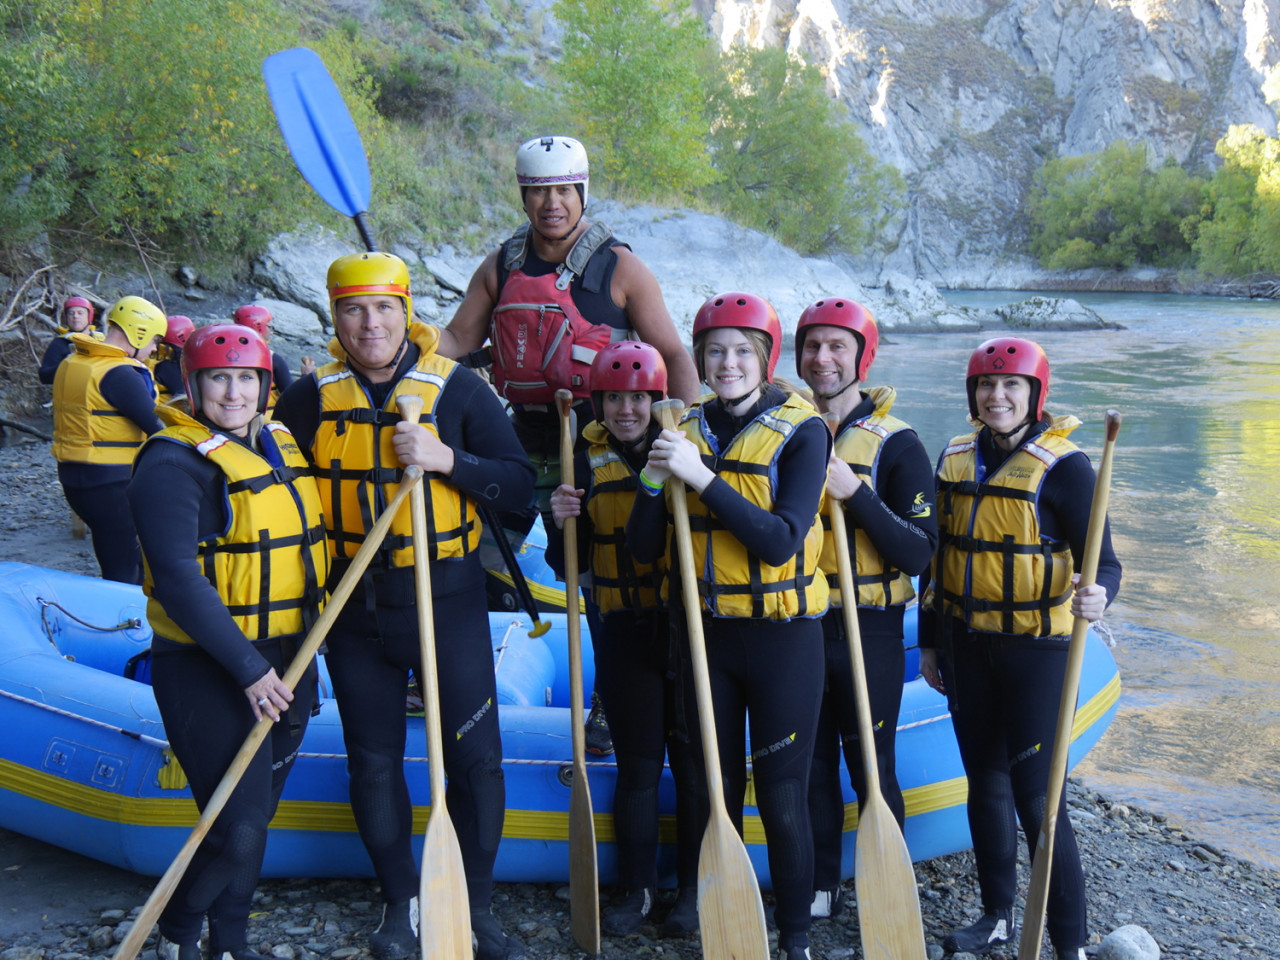 Head guide Chief (in the white helmet) looking pretty confident.